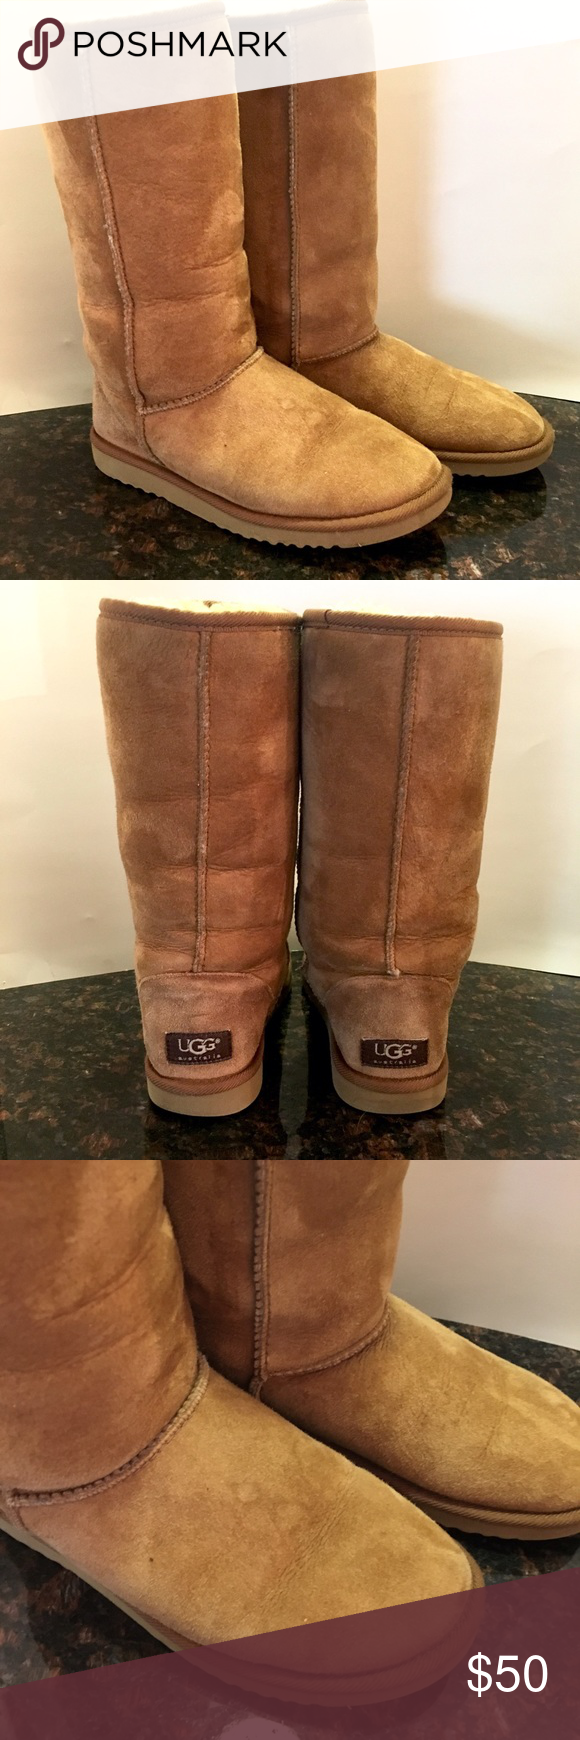 UGG Classic Tall Chestnut Boot UGG Classic Tall chestnut boot  These UGGs have been worn. The right boot has a light water stain and the left boot has a drip mark shown in the photos.   These weren't worn a ton and are still in great condition.  Woman's size 5 UGG Shoes Winter & Rain Boots